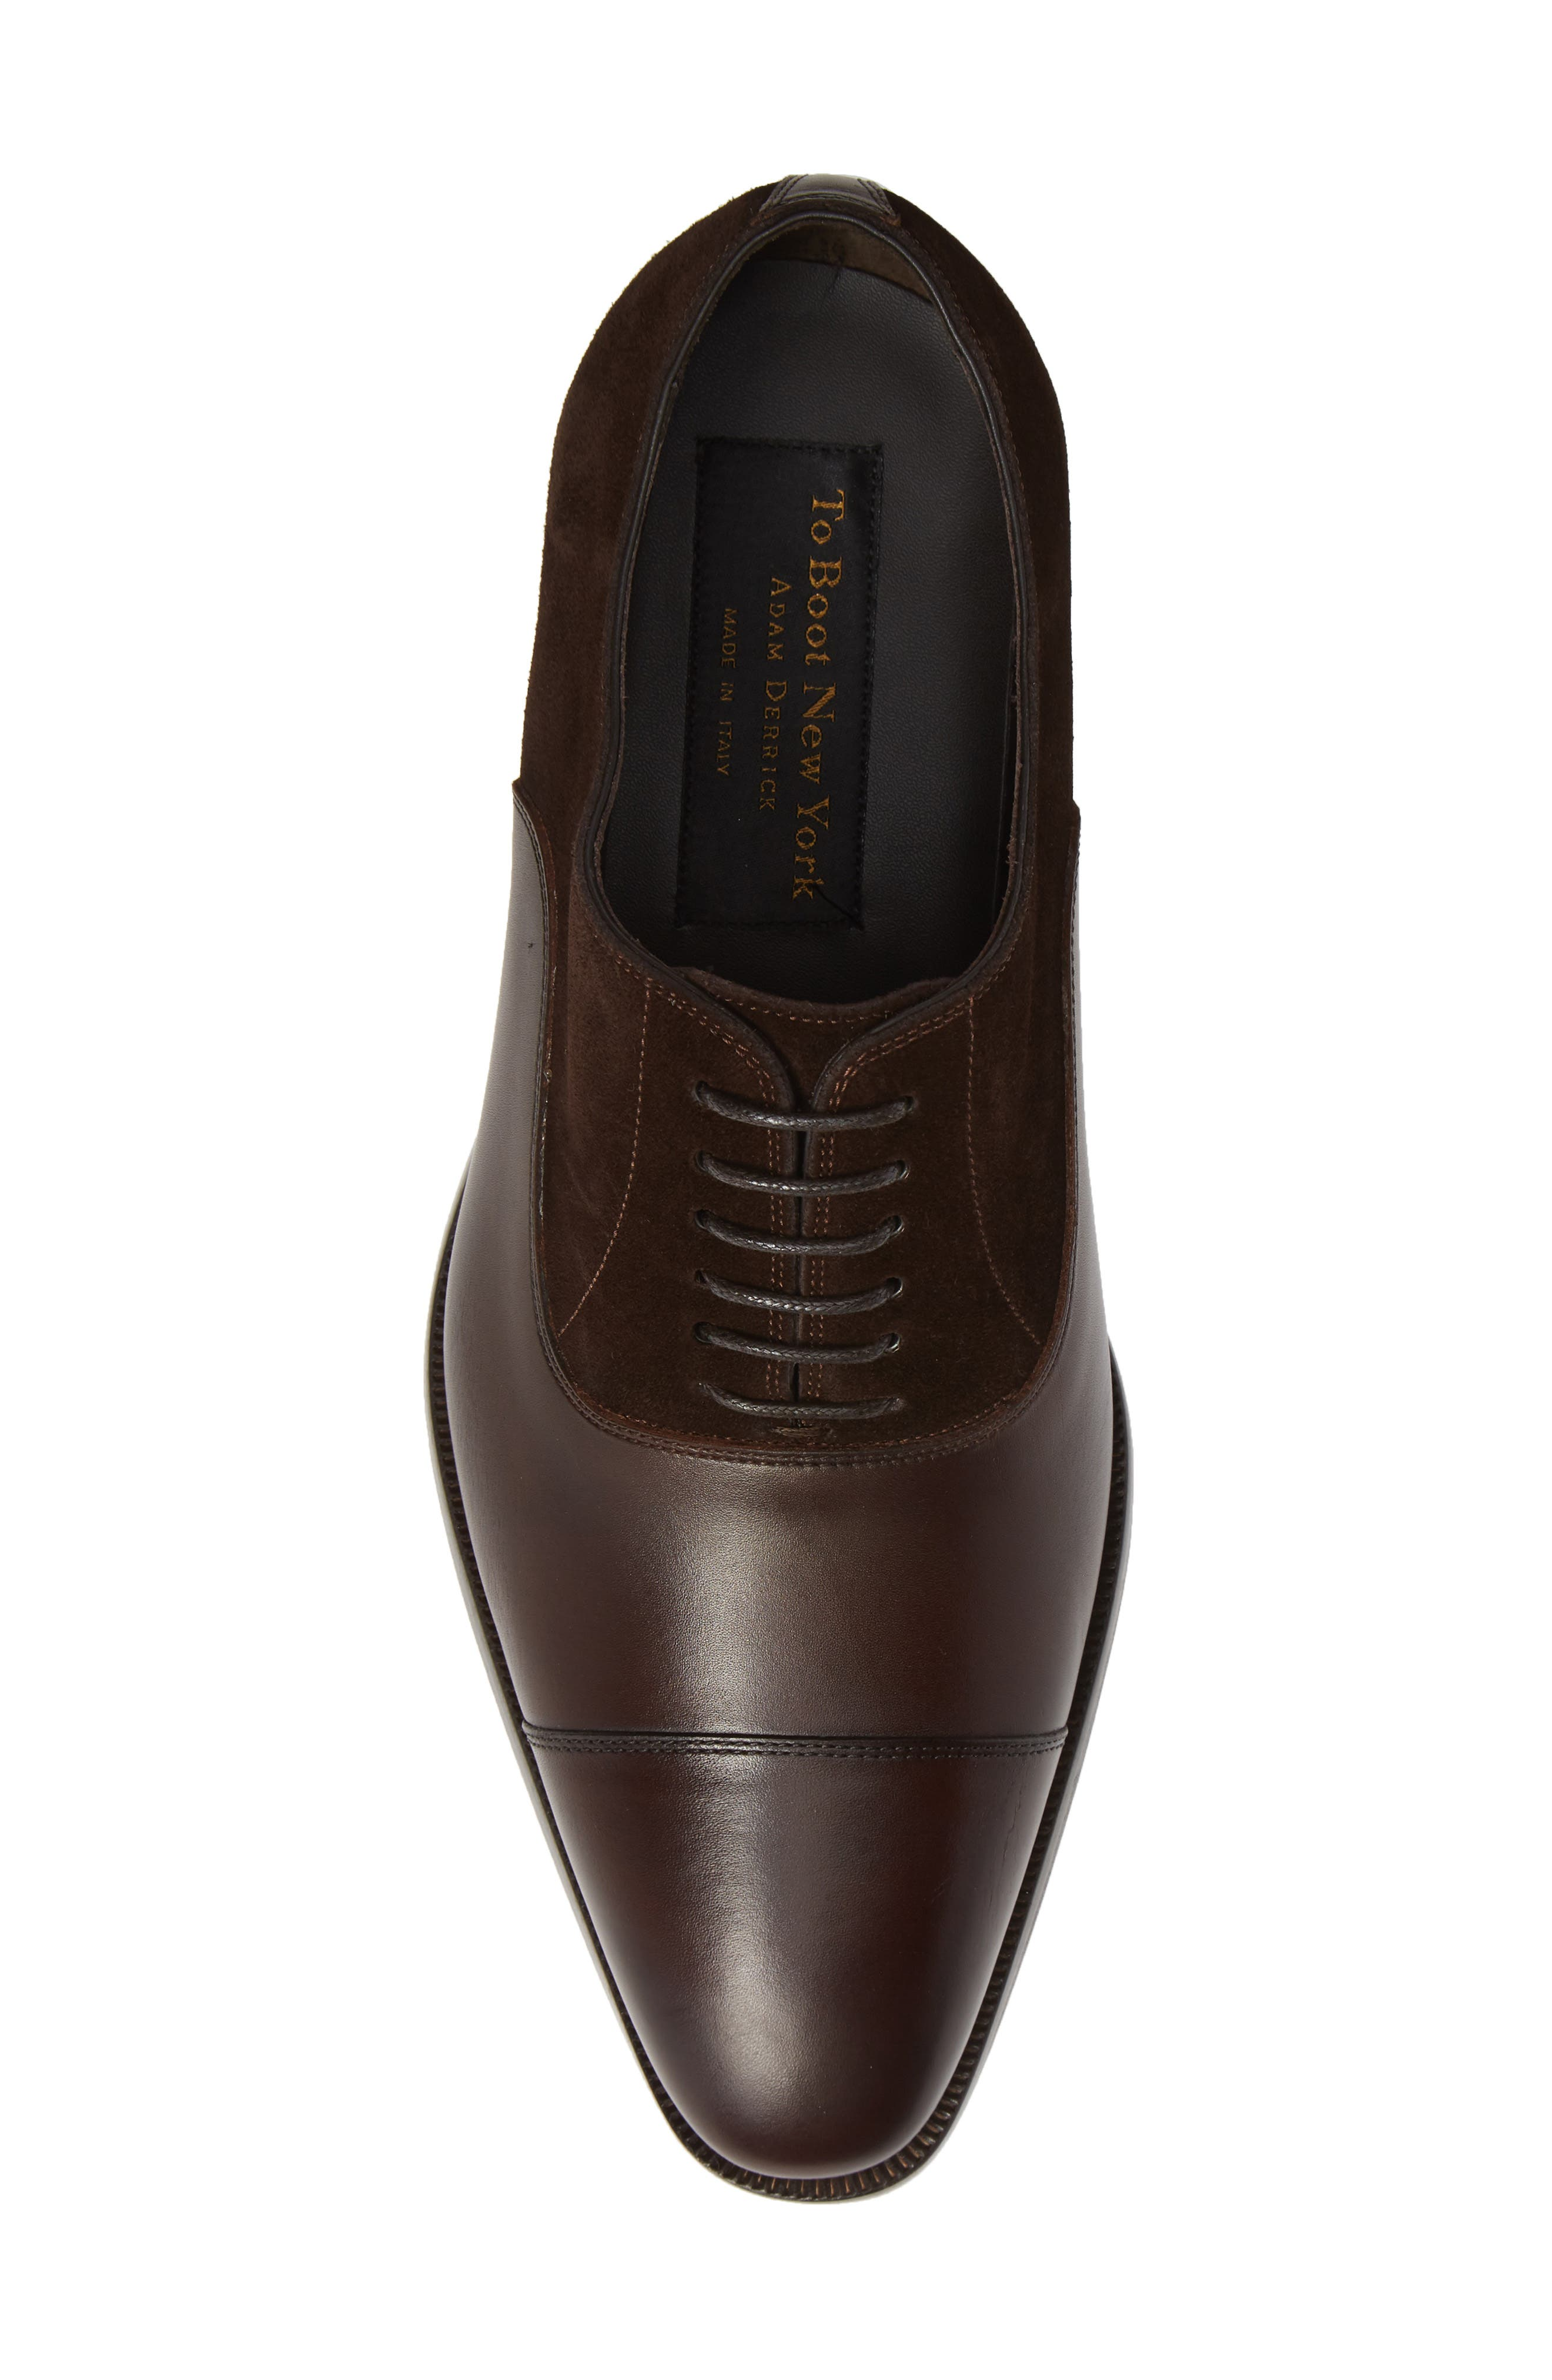 Amadora Cap Toe Oxford,                             Alternate thumbnail 5, color,                             BERRY/ BROWN LEATHER